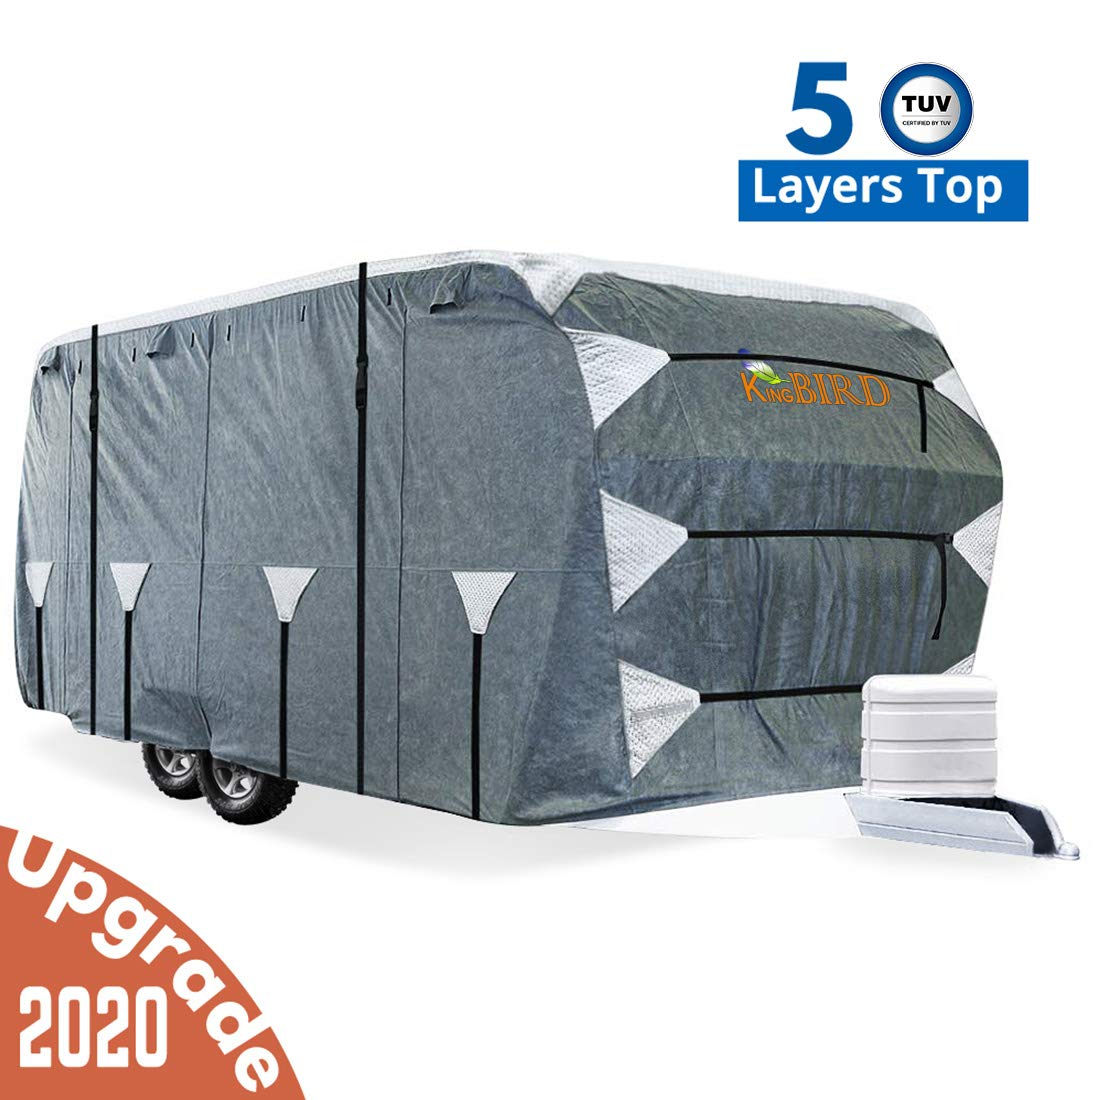 KING BIRD Upgraded Travel Trailer RV Cover, Extra-Thick 5 Layers Anti-UV Top Panel, Deluxe Camper Cover, Fits 27'- 30' RV Cover -Breathable, Water-Repellent, Rip-Stop with 2Pcs Straps & 4 Tire Covers